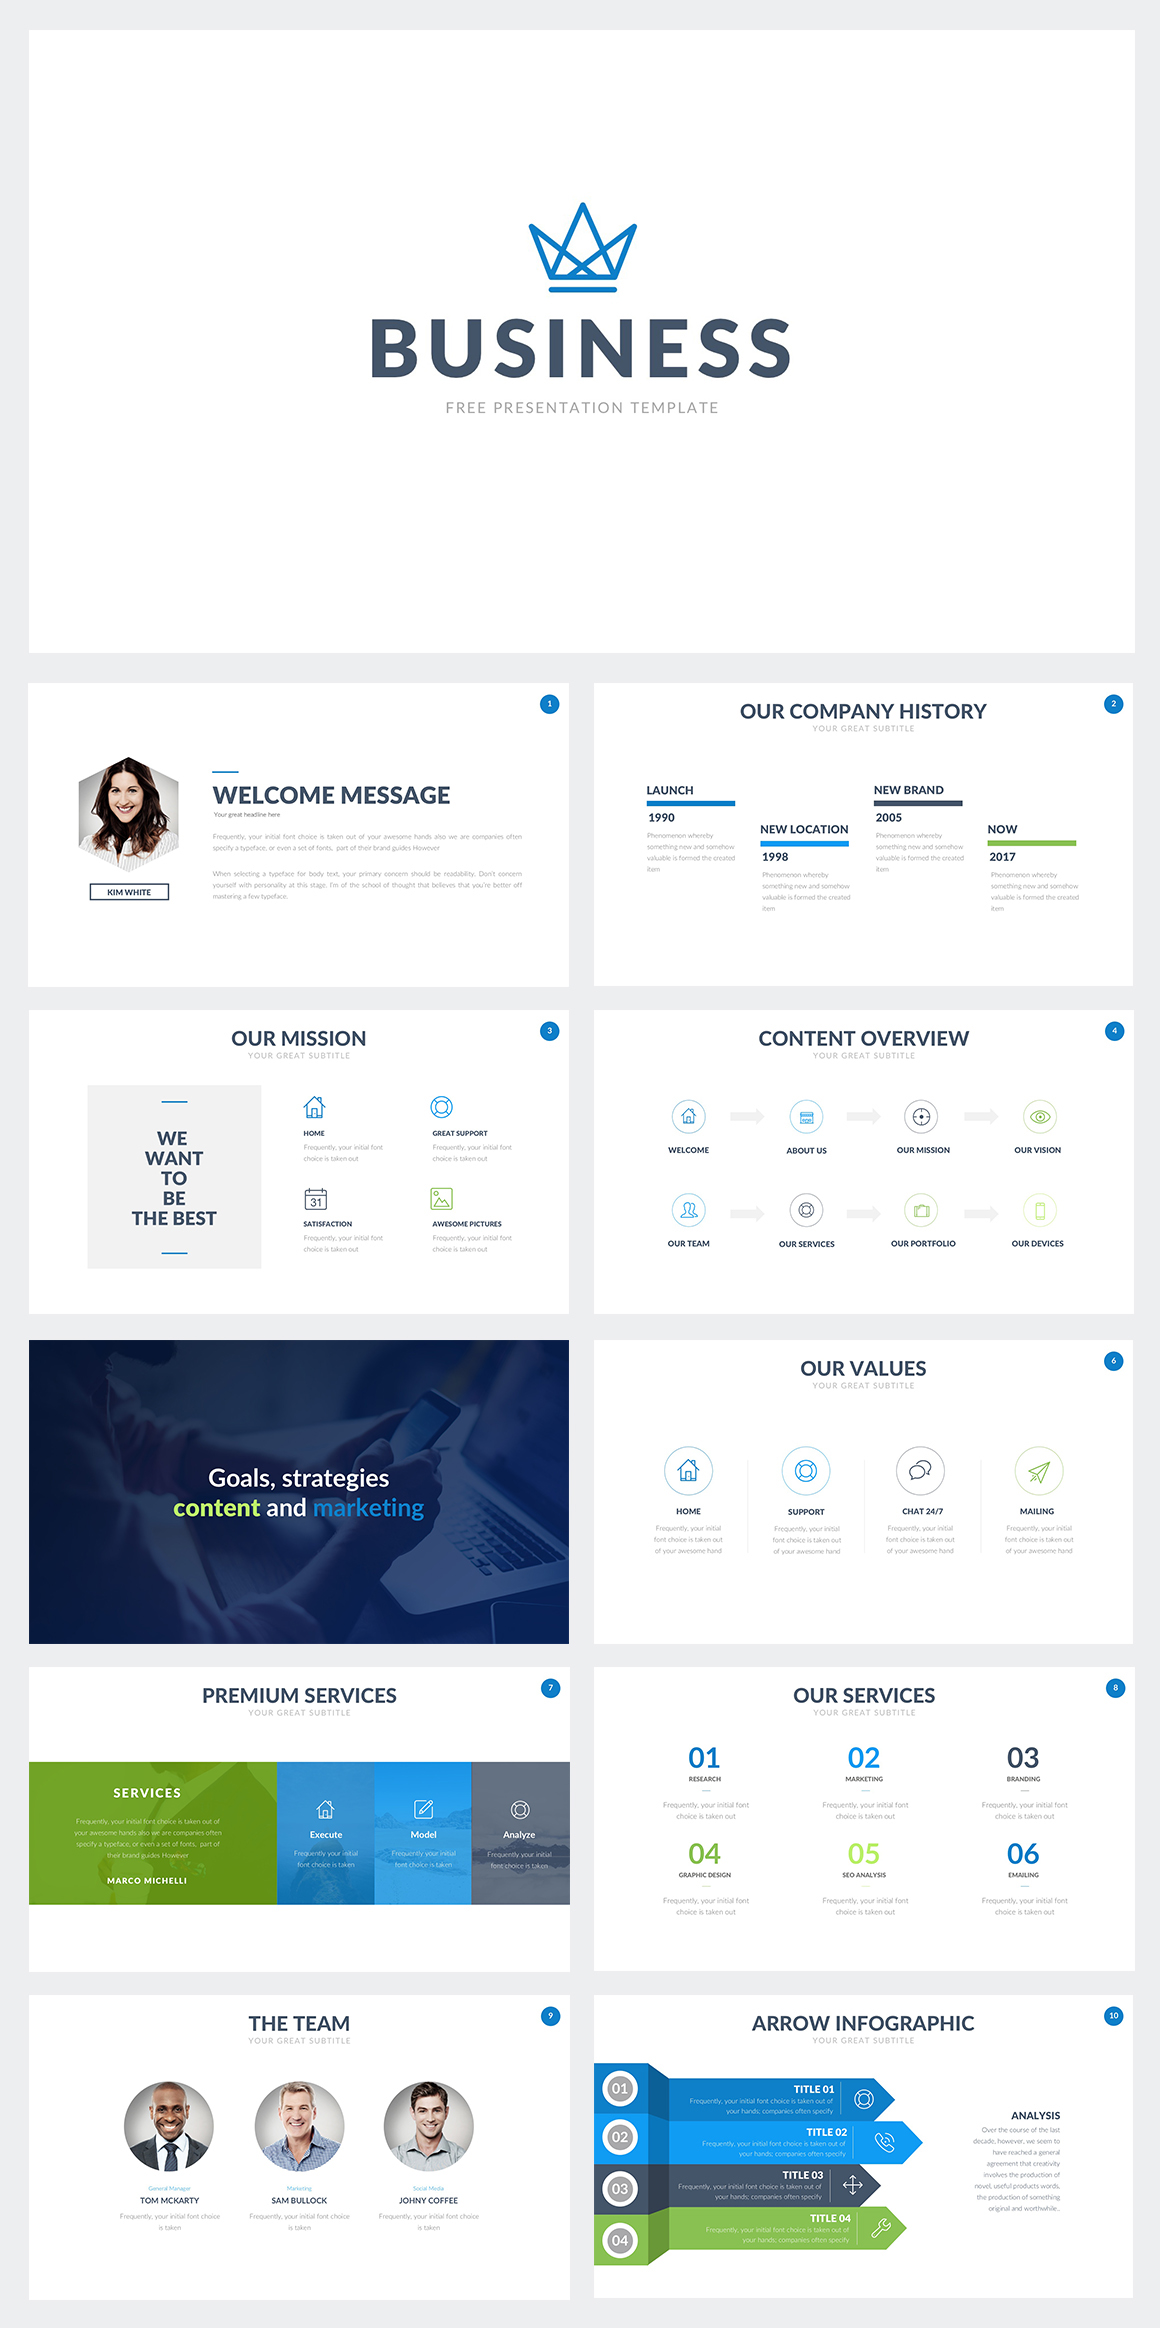 Free business powerpoint template on behance free business powerpoint template here accmission Gallery